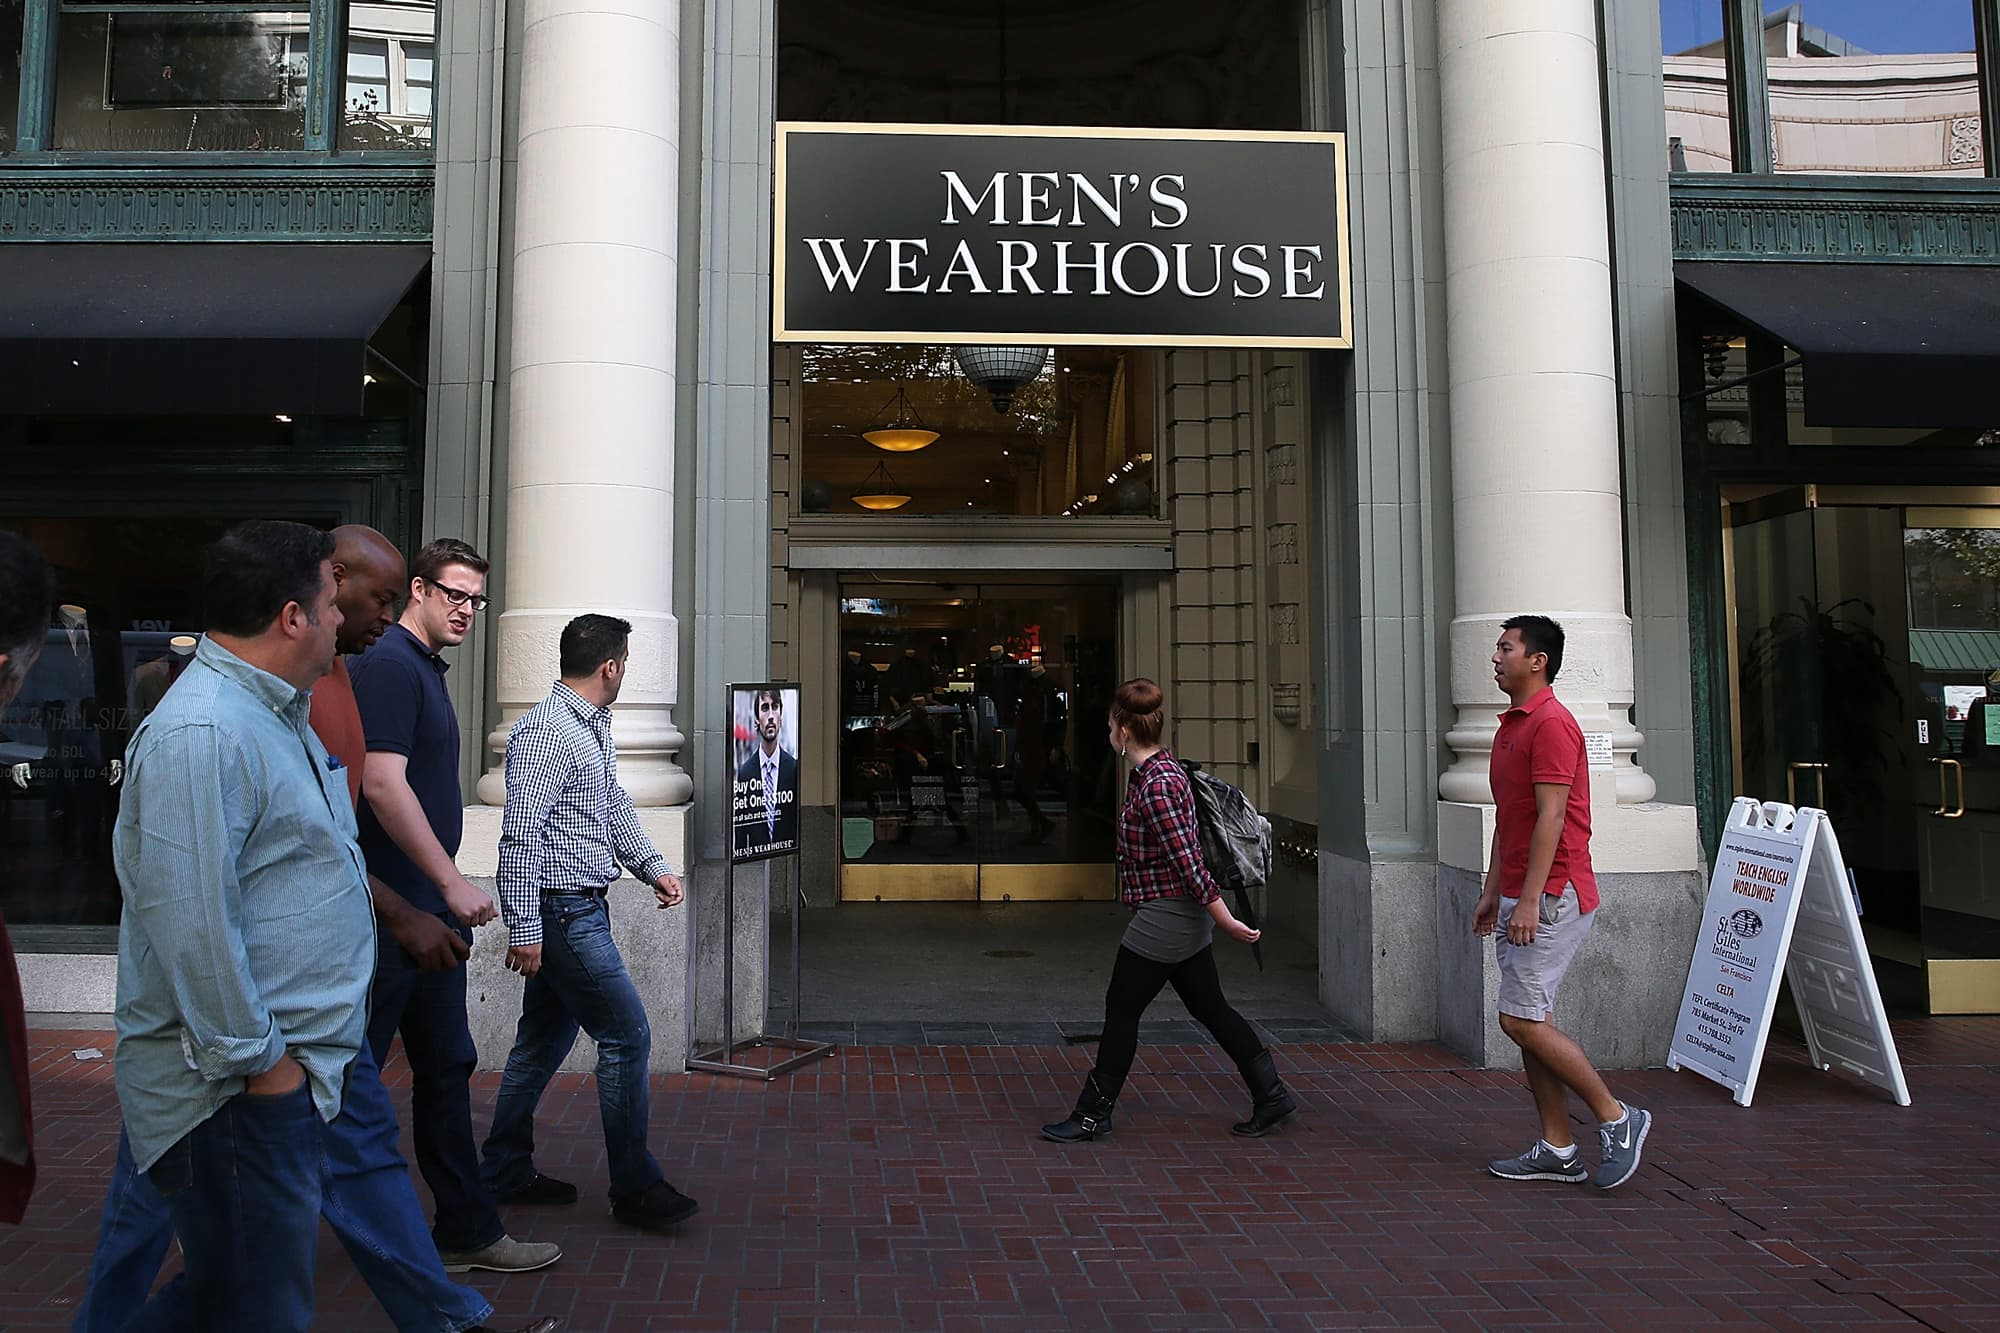 Chesapeake, Macy's, Tailored Brands and more